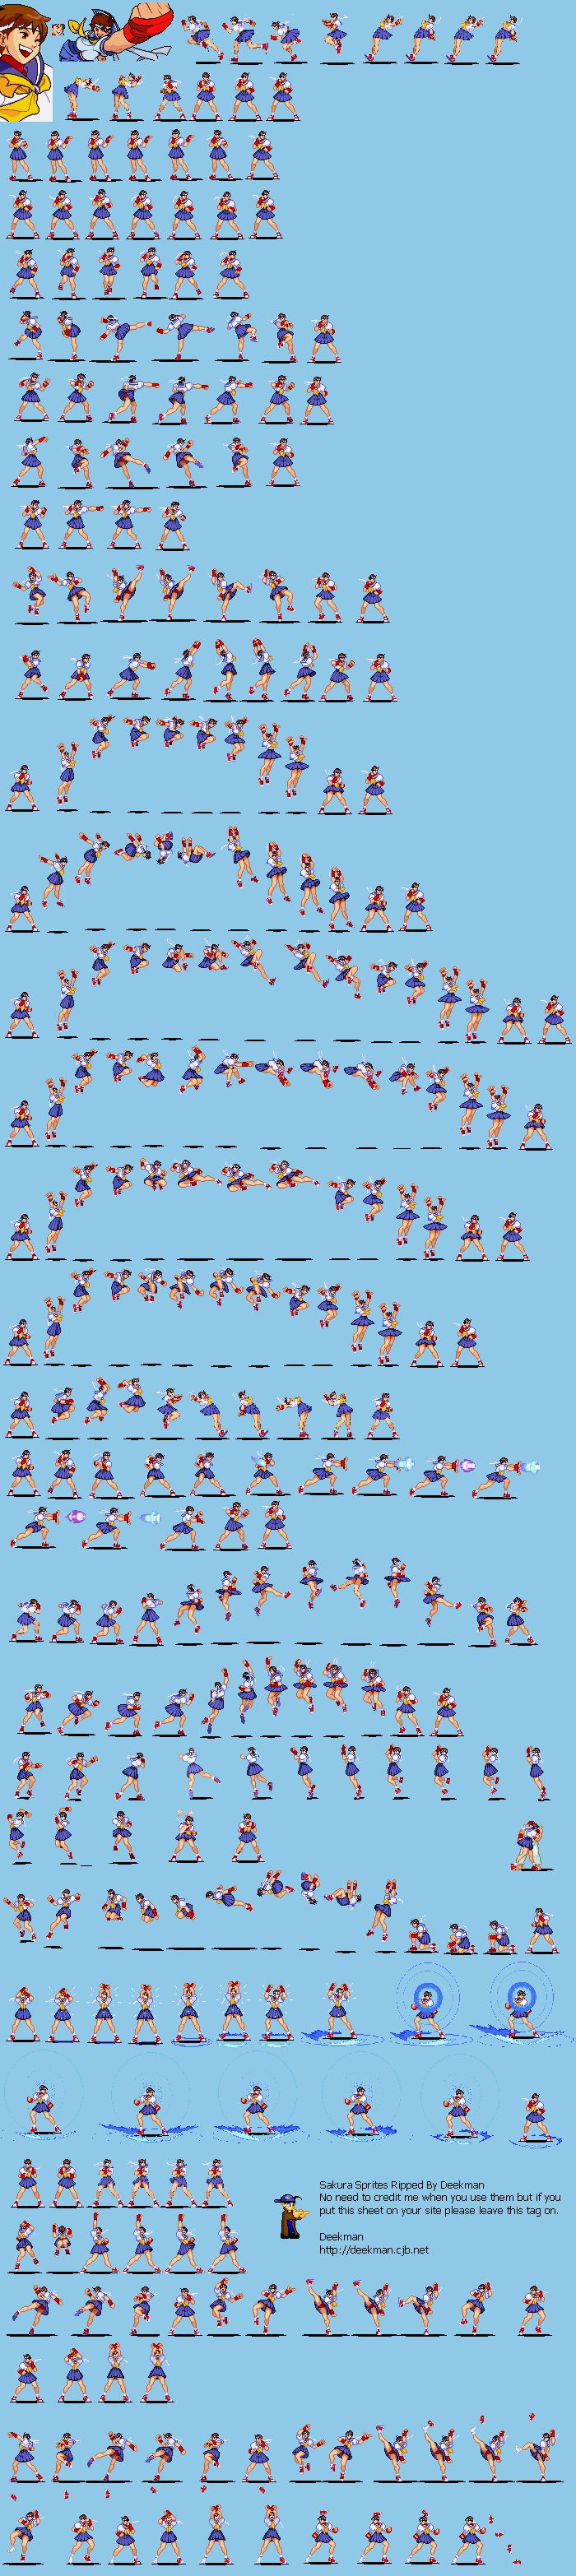 Fighter Street Sprite Games Sheets 4